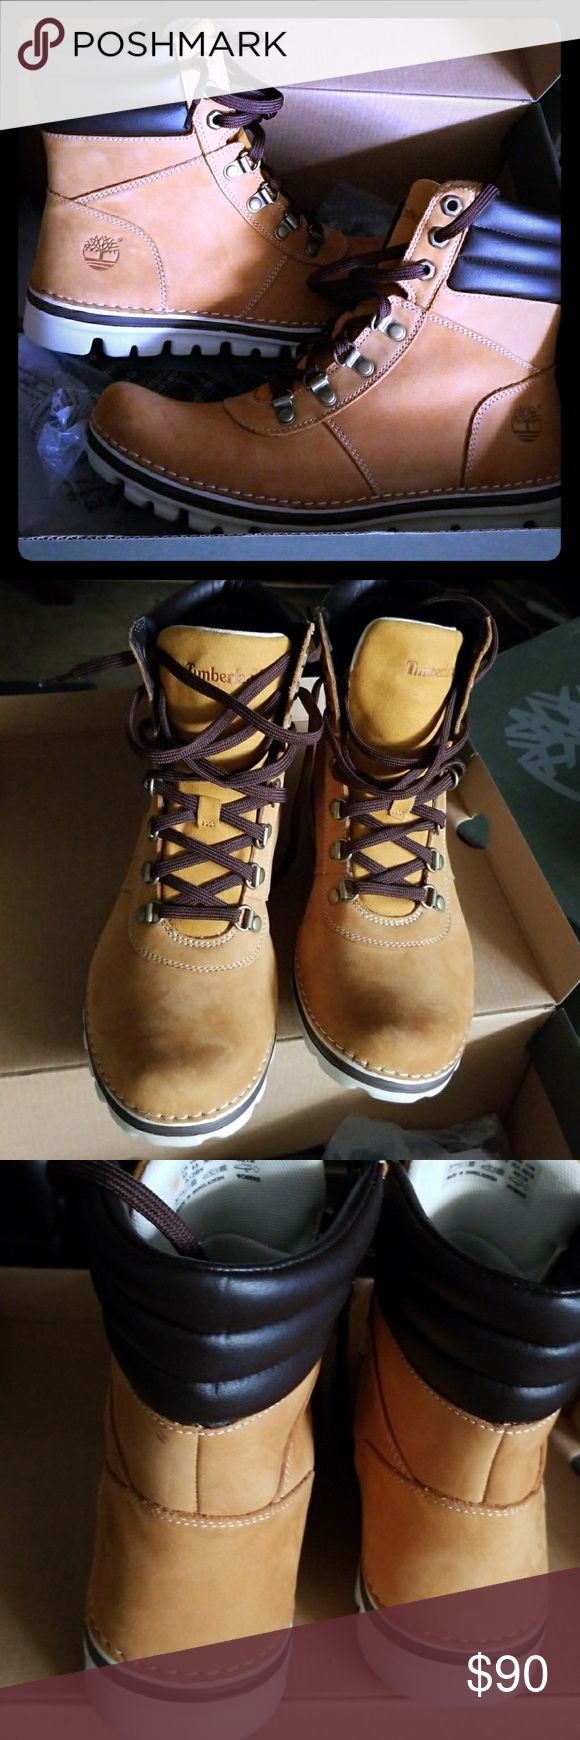 Timberland Brand new women's timberlands still in box never worn very comfortable size 8.5...if u have questions please direct them to me the seller I ran into a conversation about my product that i felt was very inappropriate so I reposted..if your interested price is negotiable thanks 🤗 Timberland Shoes Ankle Boots & Booties